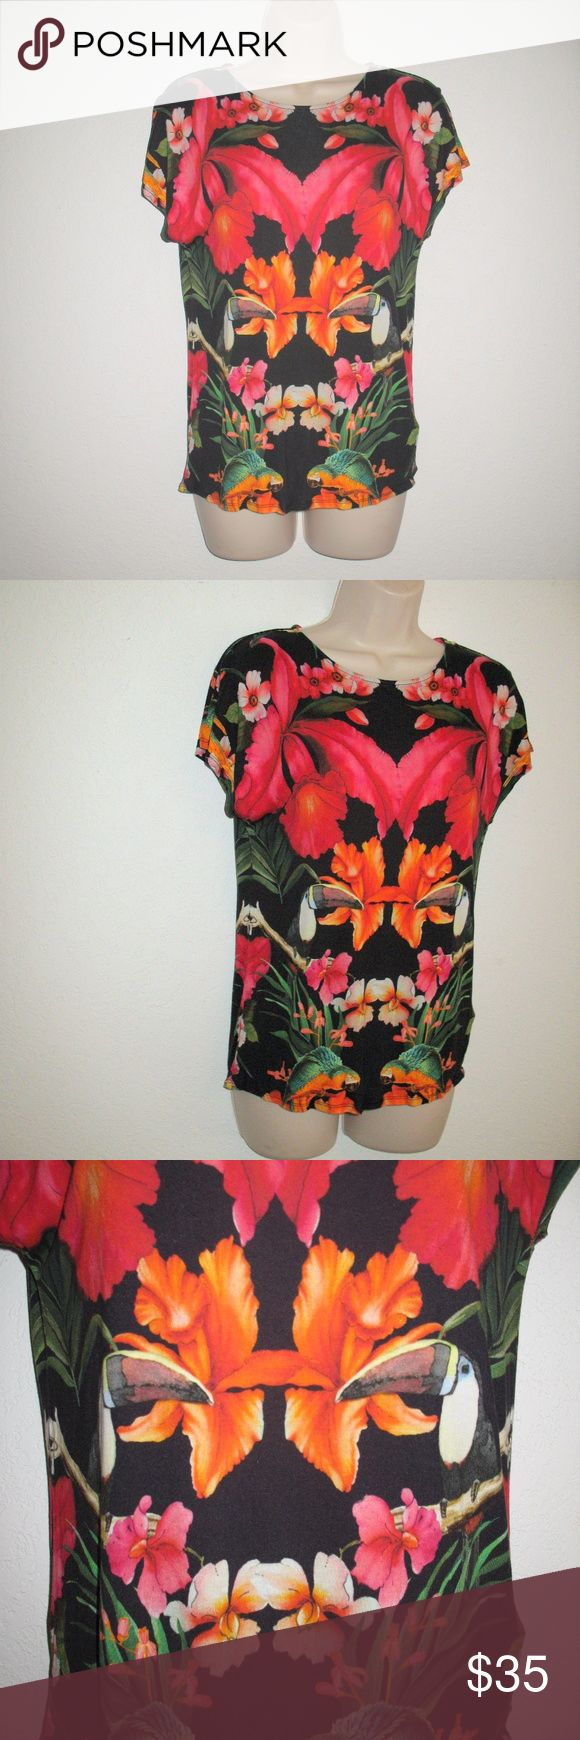 "Ted Baker Hozly Tropical Toucan T-Shirt Top-XS Ted Baker Hozly Tropical Toucan T-Shirt Top-XS  *Very good condition.  Details: Ted Baker Size: XS (1) Color: Black/Multi 100% Viscose  Measurements: Length: 23"" Bust: 35"" Waist: 32"" Ted Baker London Tops Tees - Short Sleeve"